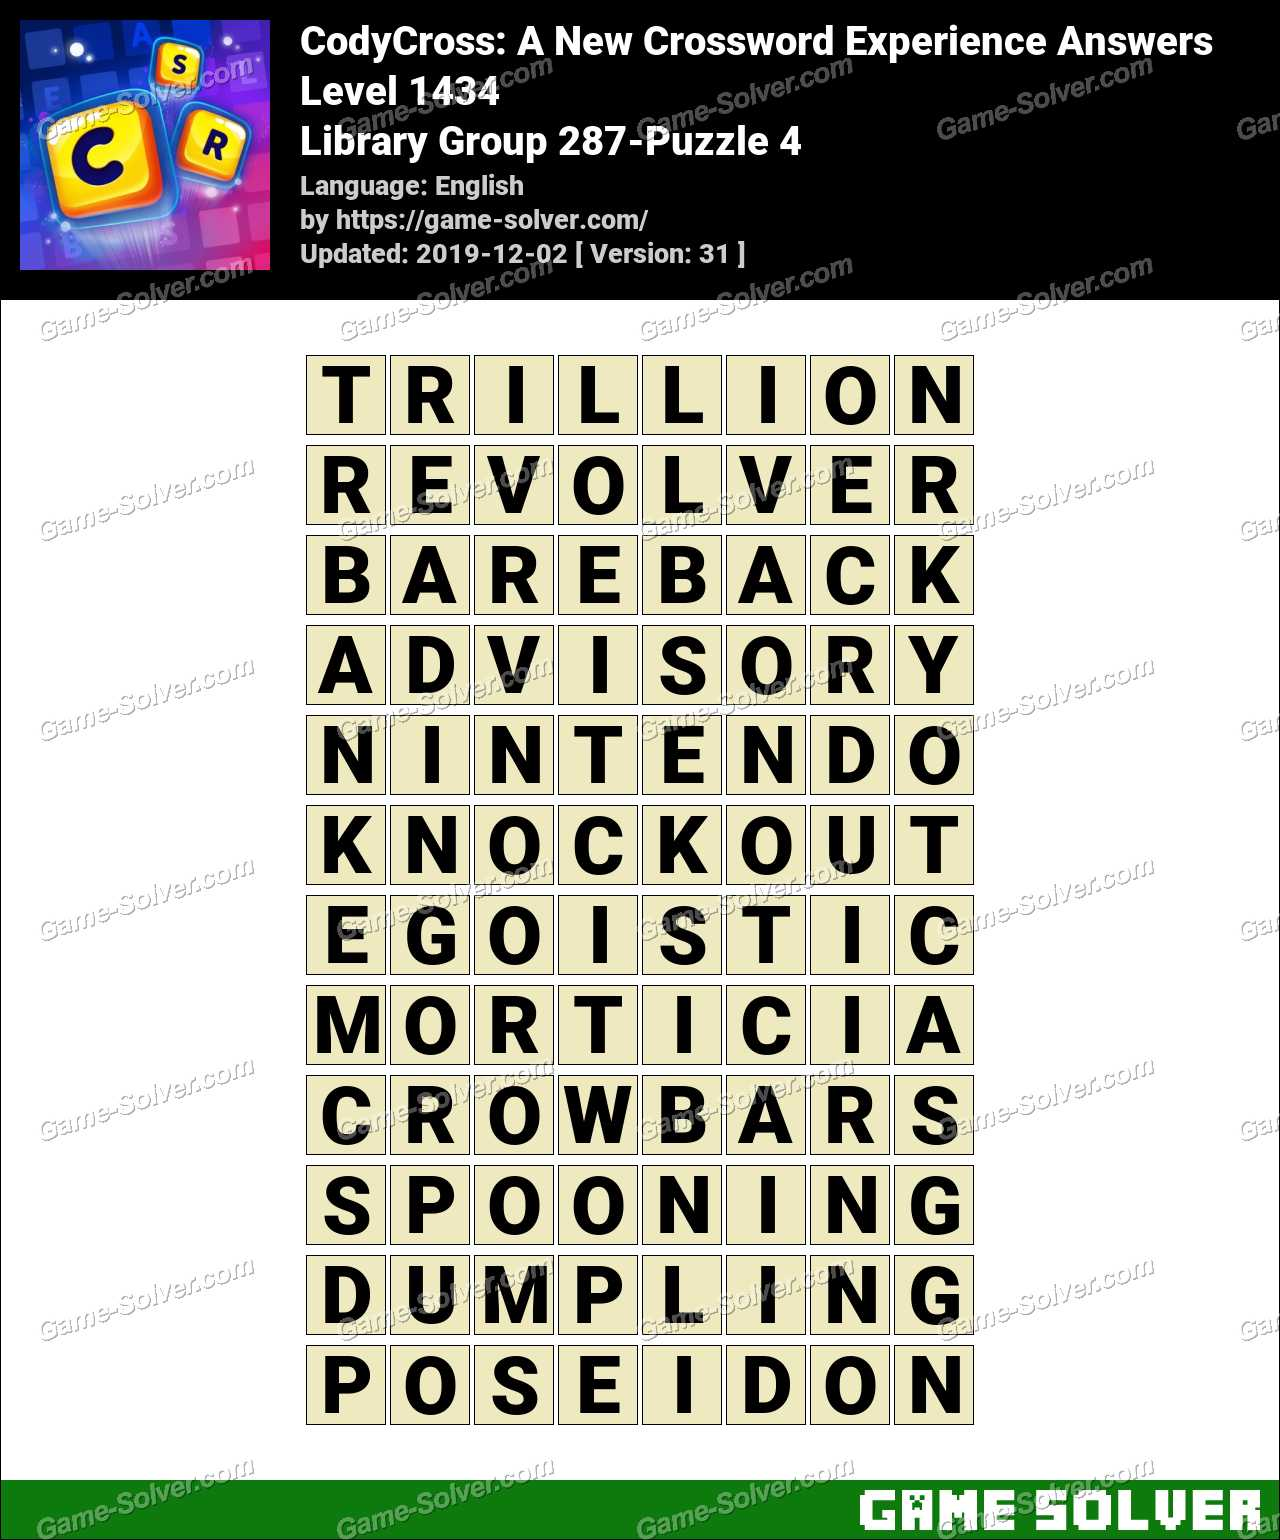 CodyCross Library Group 287-Puzzle 4 Answers